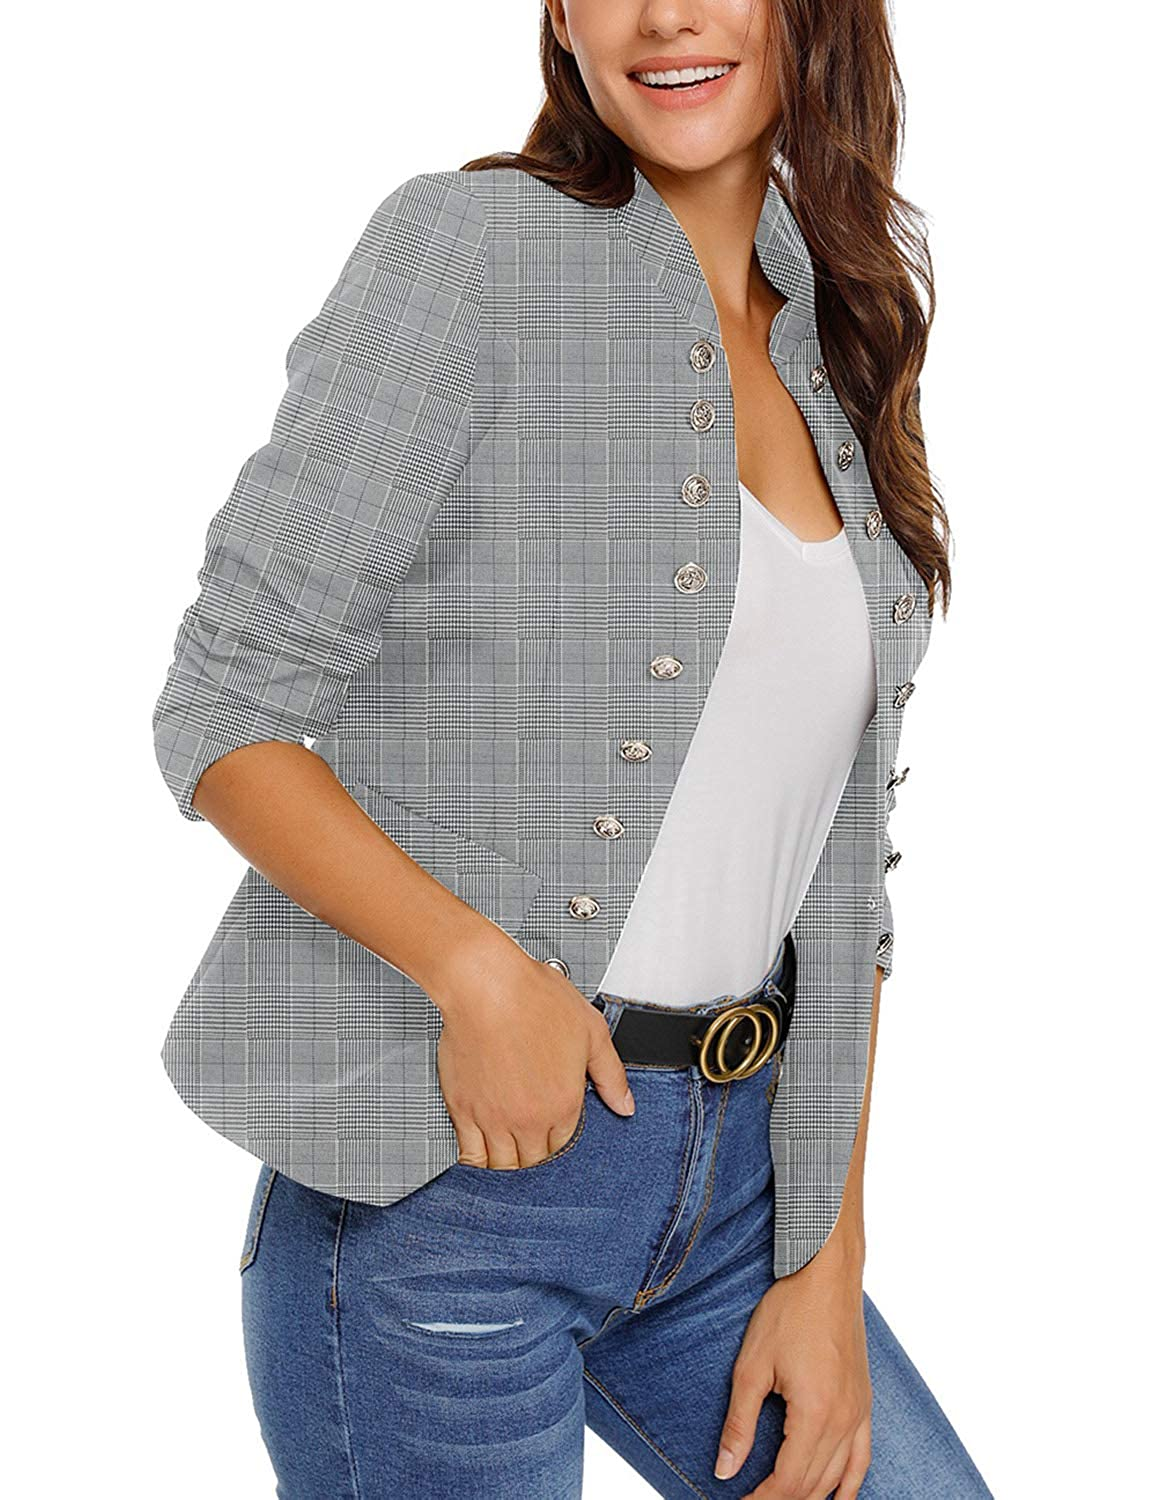 Maolijer Womens Open Front Buttons Work Office Blazer Casual Cardigan Business Jacket Suit with Pockets